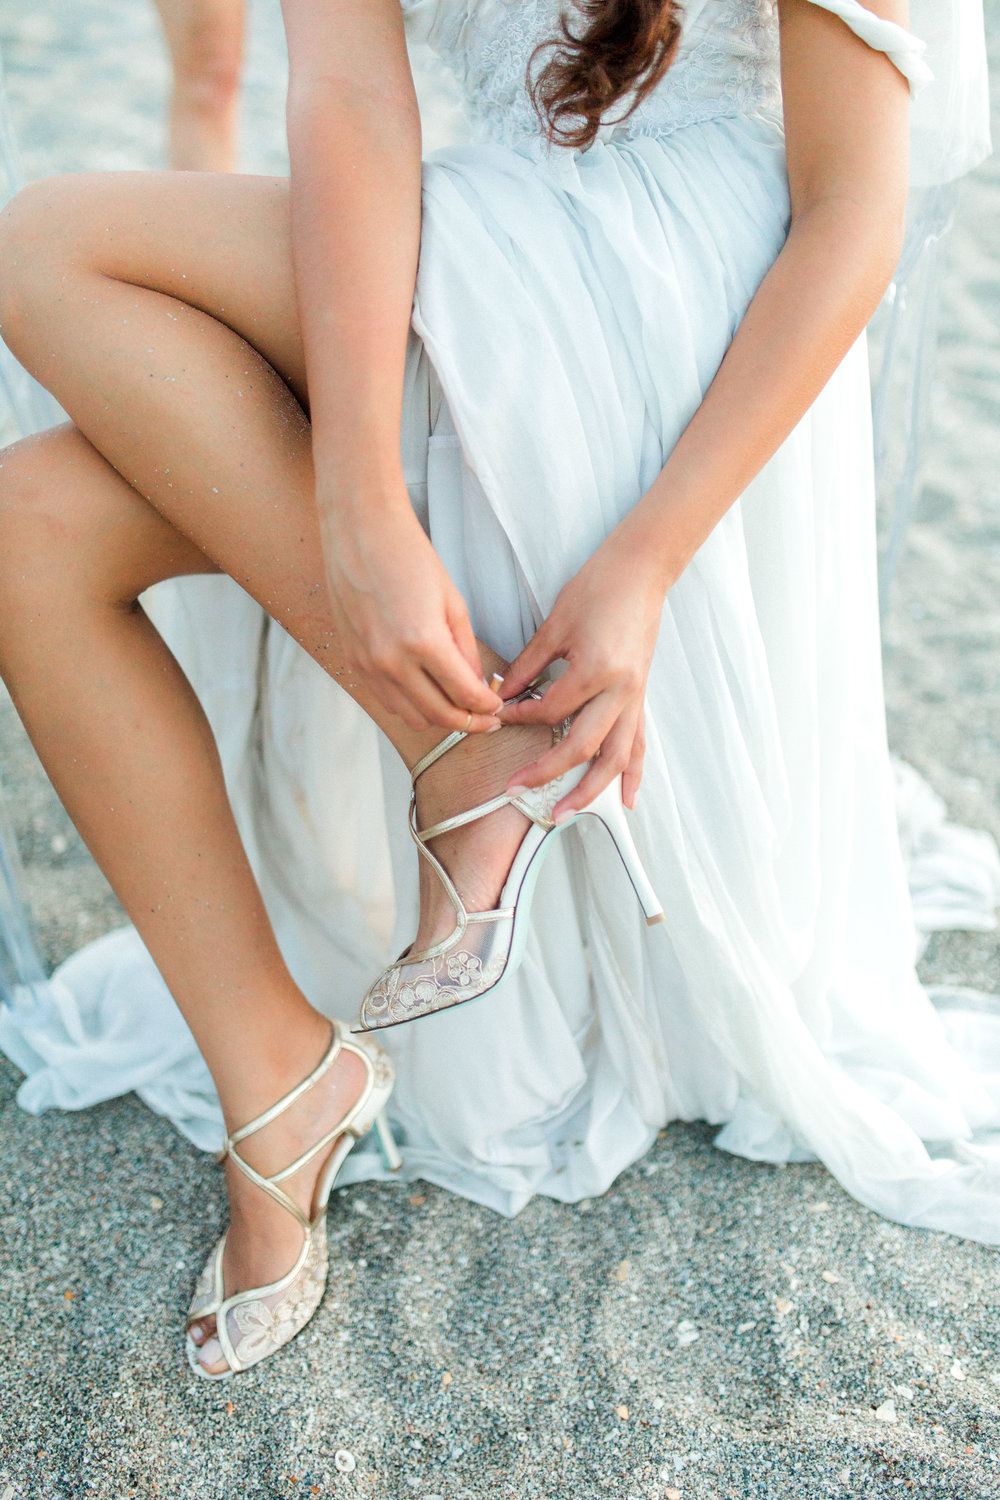 coral cove, jupiter beach FL, palm beach wedding photos, bride putting on shoes